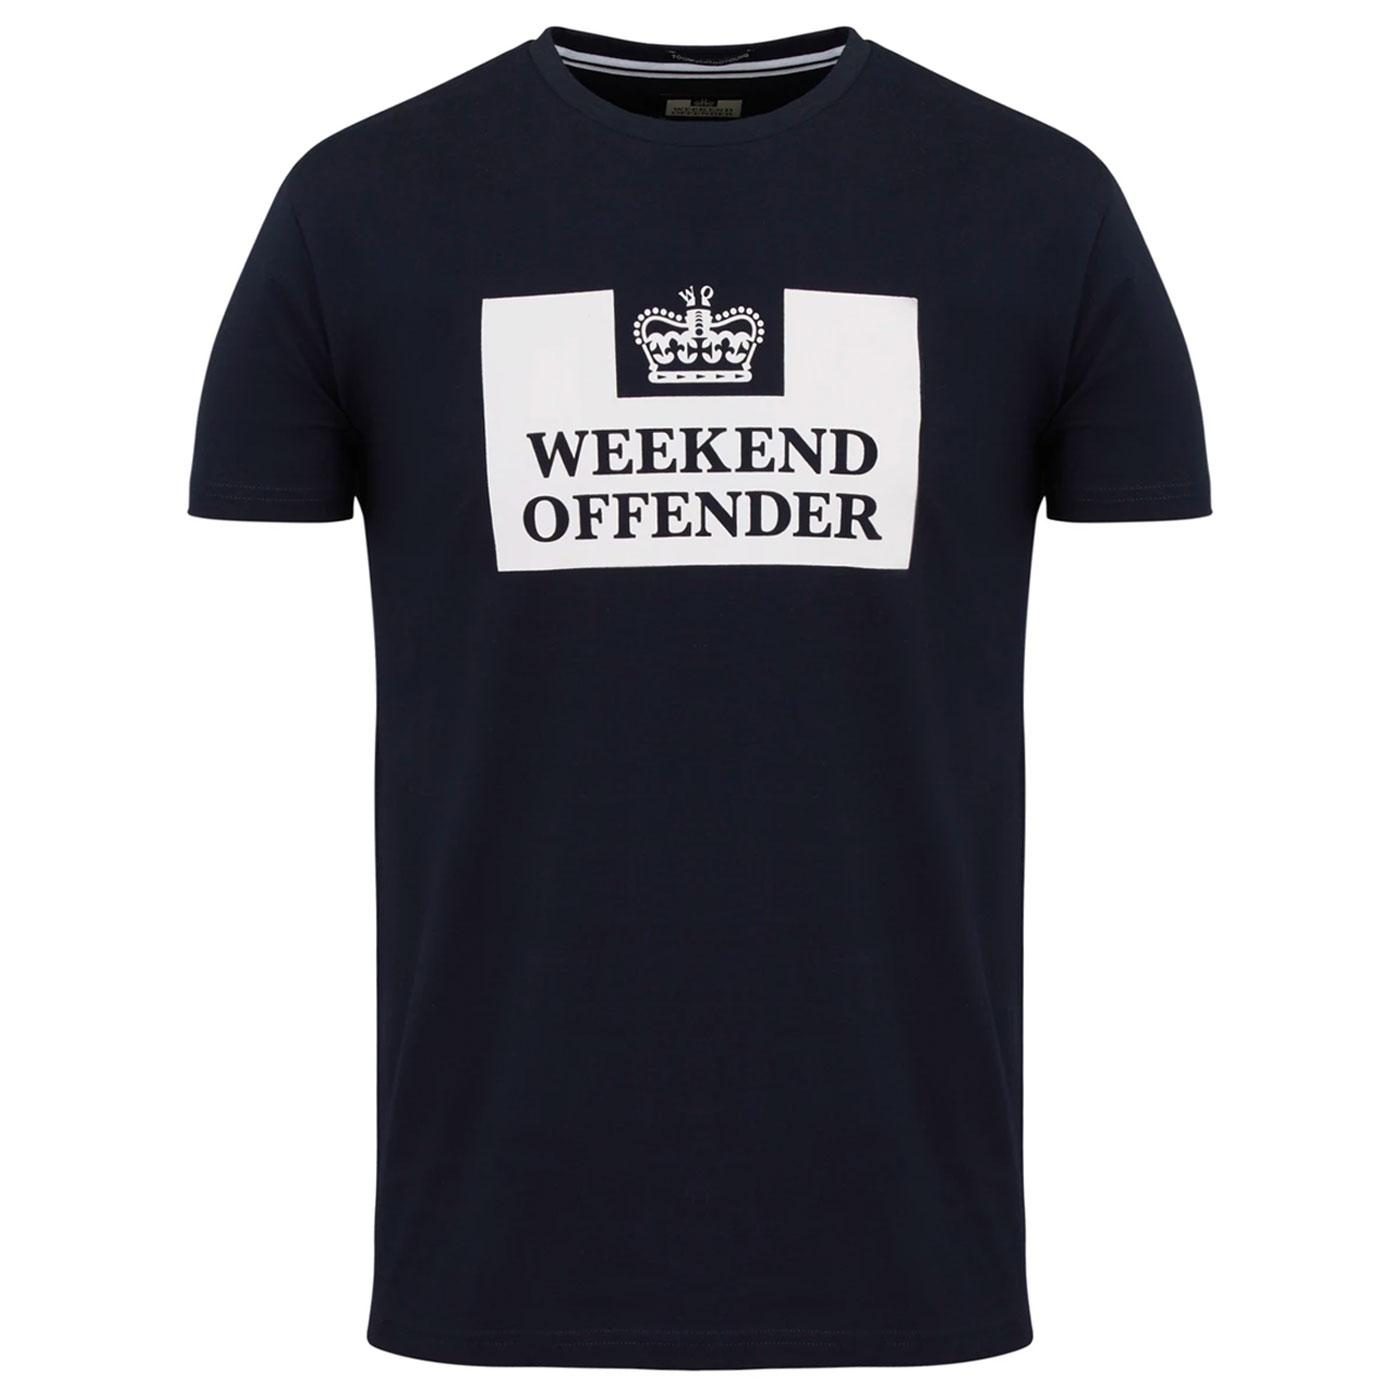 WEEKEND OFFENDER Retro Prison Classics Tee (Navy)